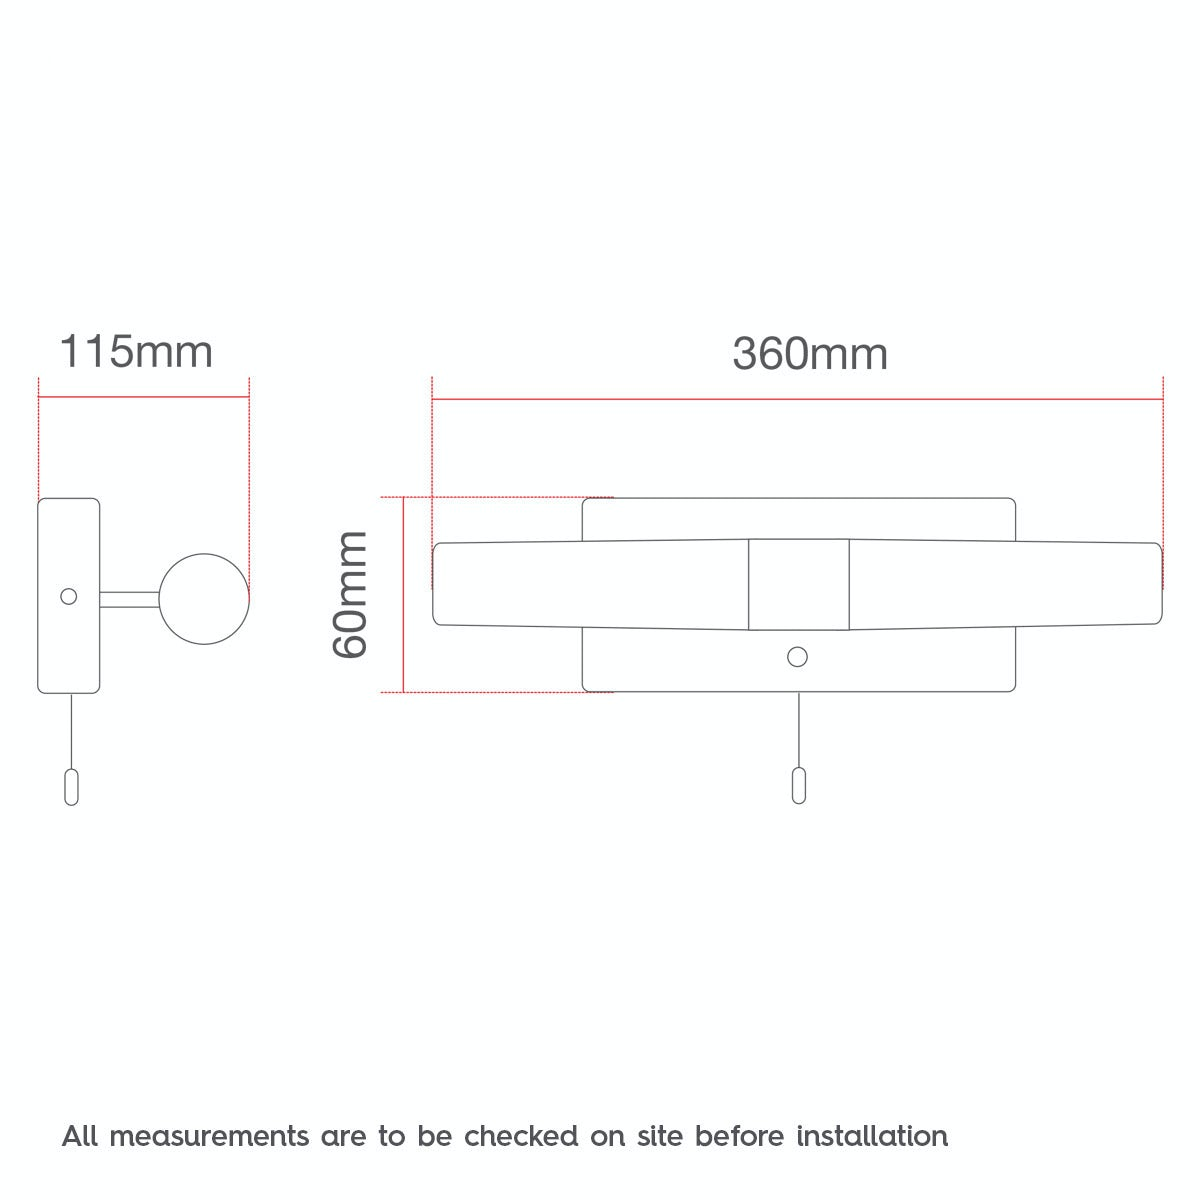 Dimensions for Forum Arinna 2 light over mirror bathroom light